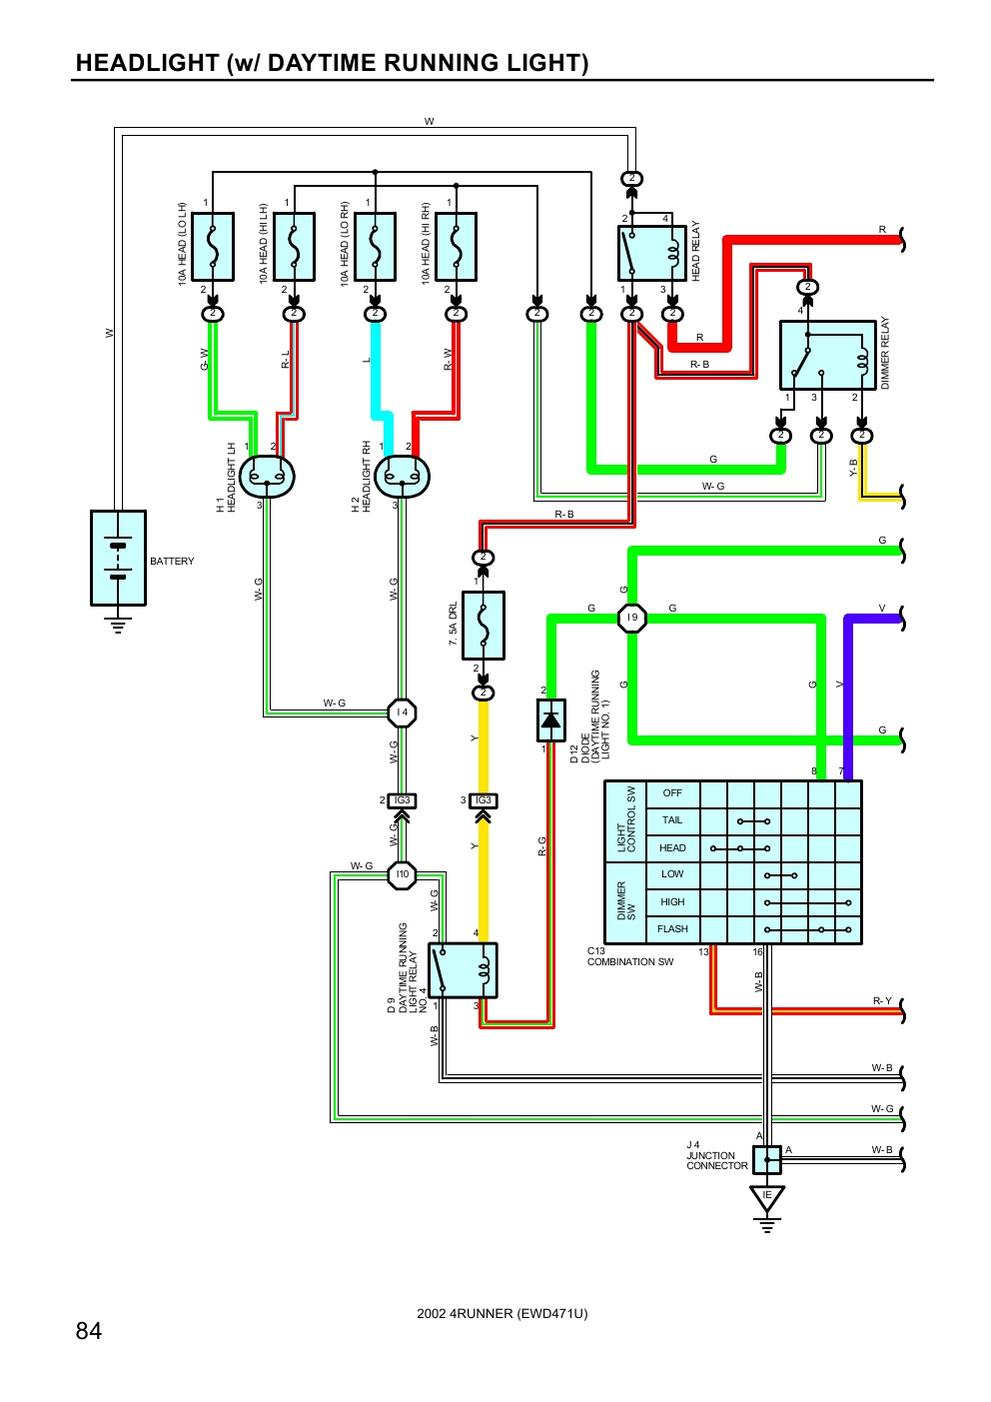 Toyota Lights Wiring Diagram - Wiring Diagram Show on chevy express van light wiring diagram, nissan titan light wiring diagram, ford f-150 light wiring diagram, toyota tacoma light switch, dodge ram light wiring diagram,